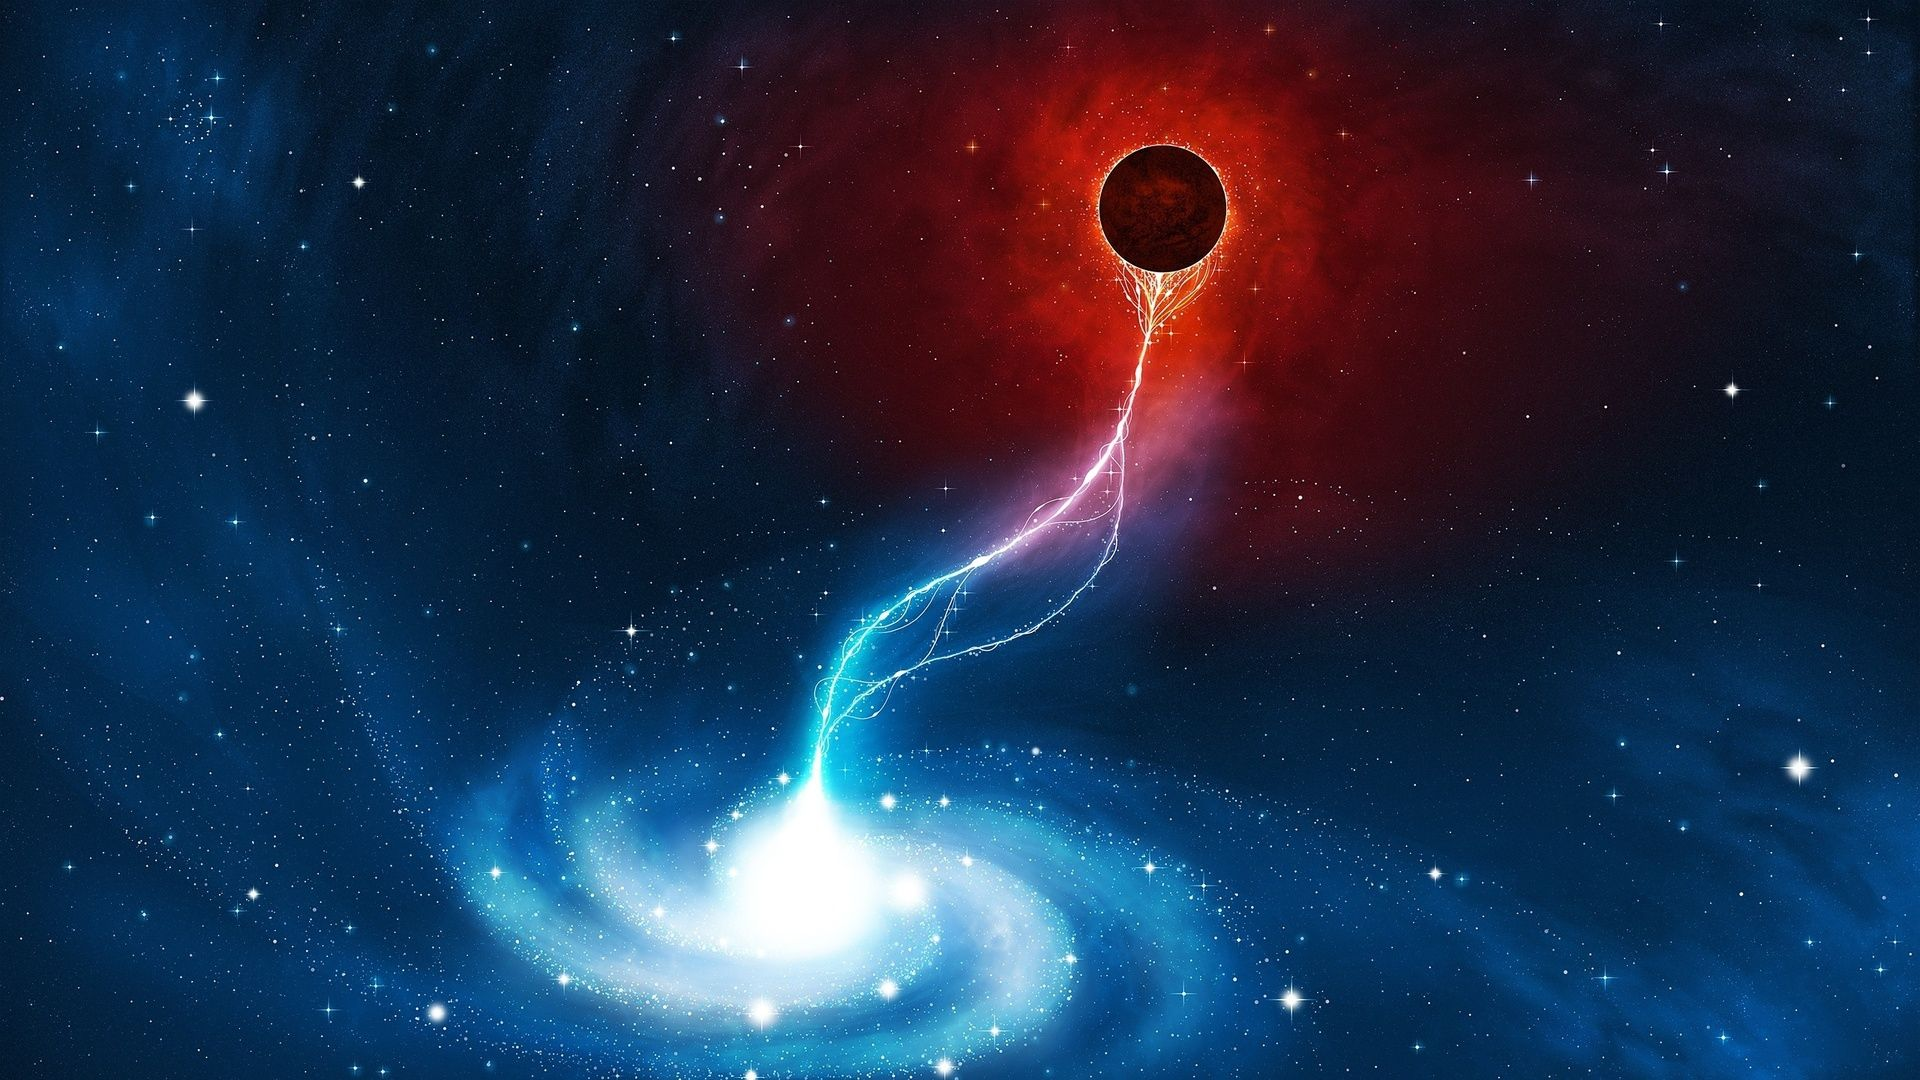 Black Hole Wallpapers Trumpwallpapers